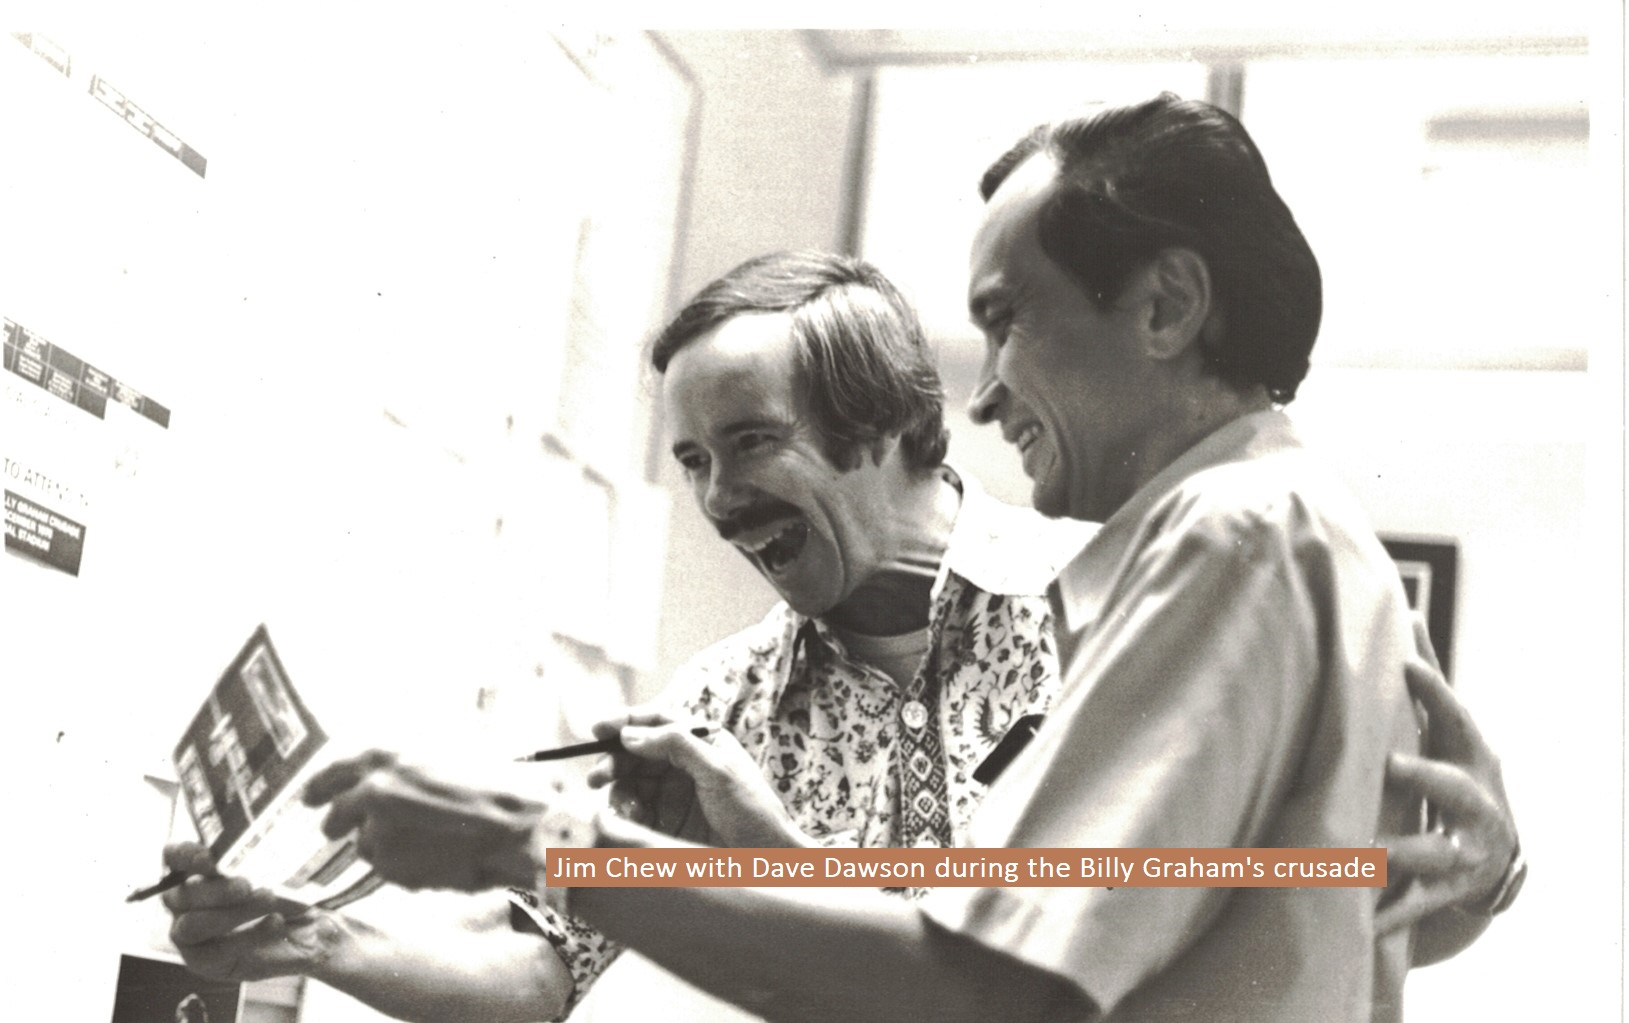 Jim Chew with Dave Dawson during Billy Graham's crusade